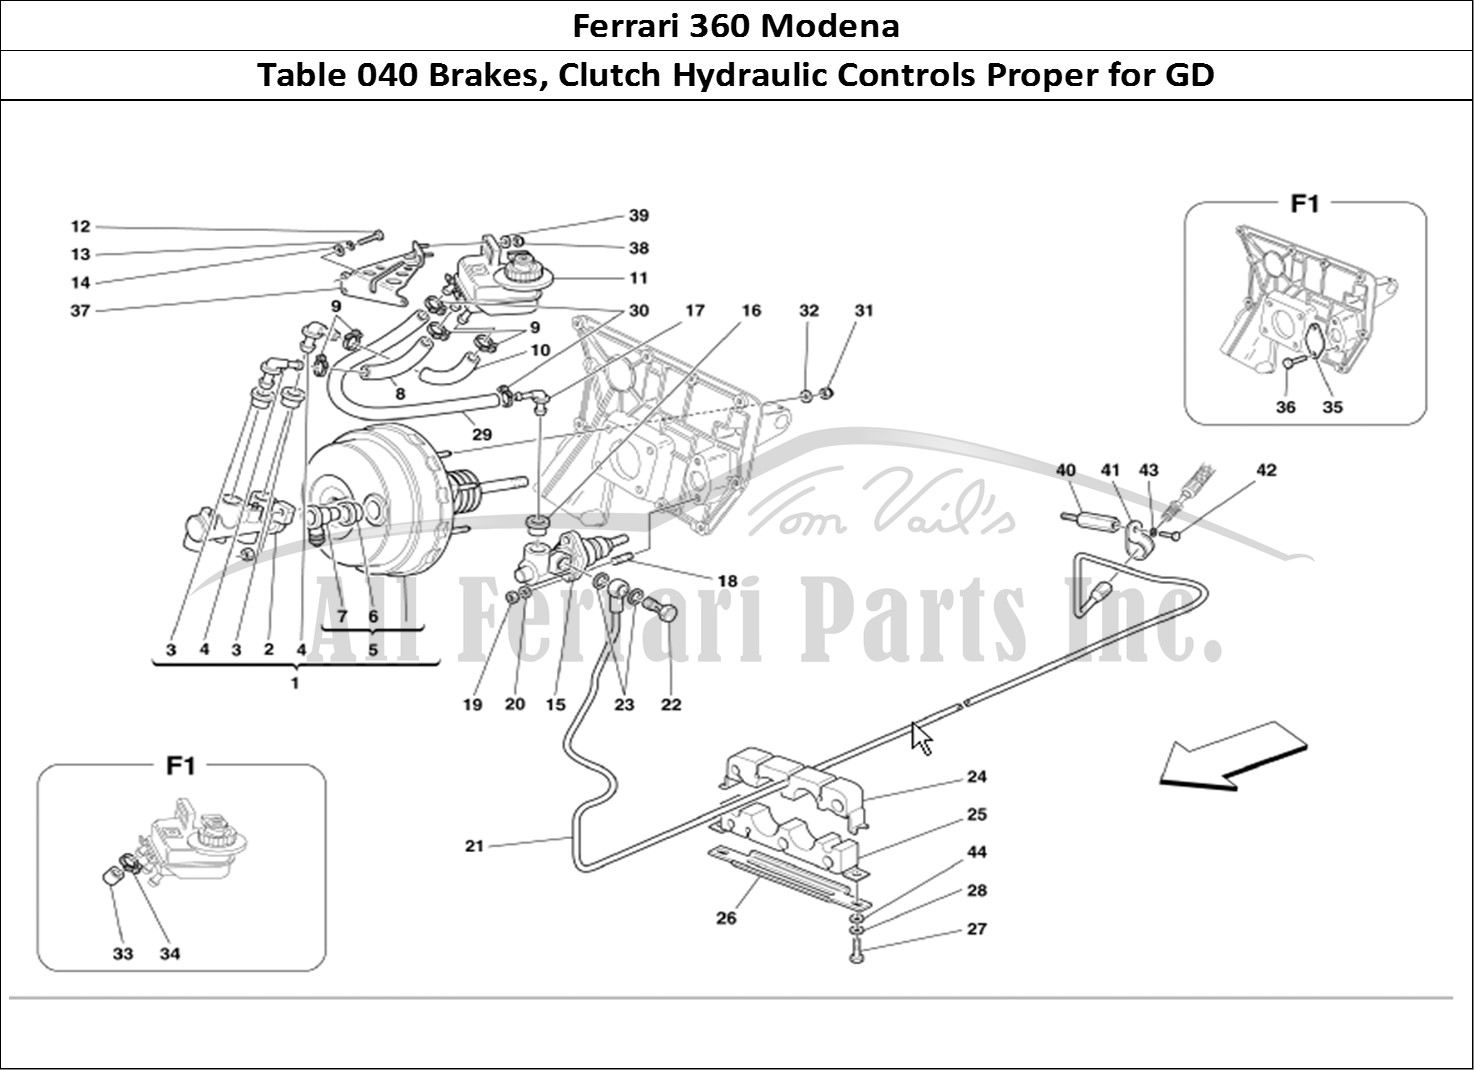 Buy original Ferrari 360 Modena 040 Brakes, Clutch